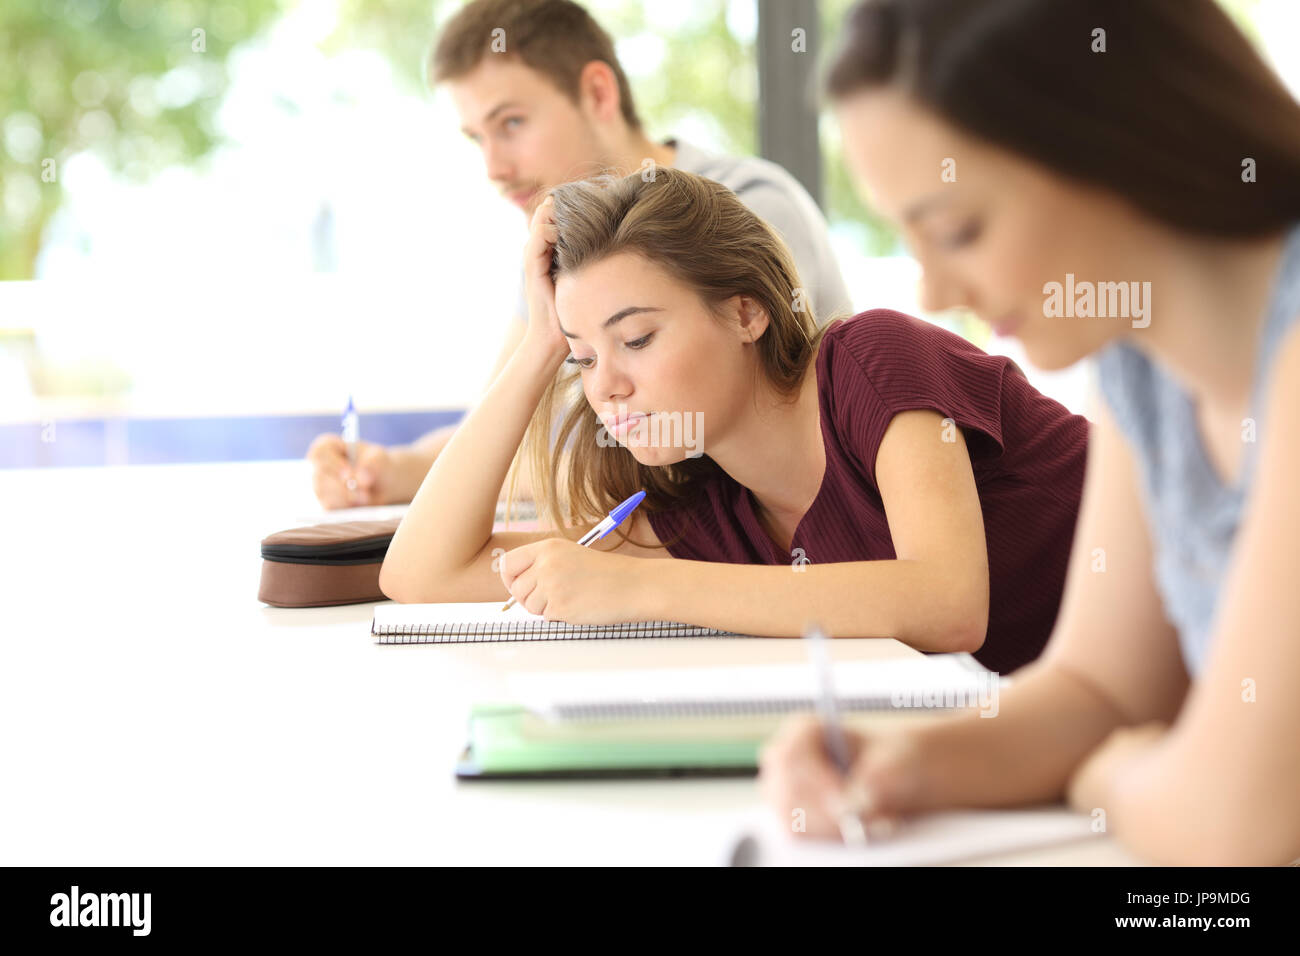 Uninterested student drawing during a class in a classroom - Stock Image